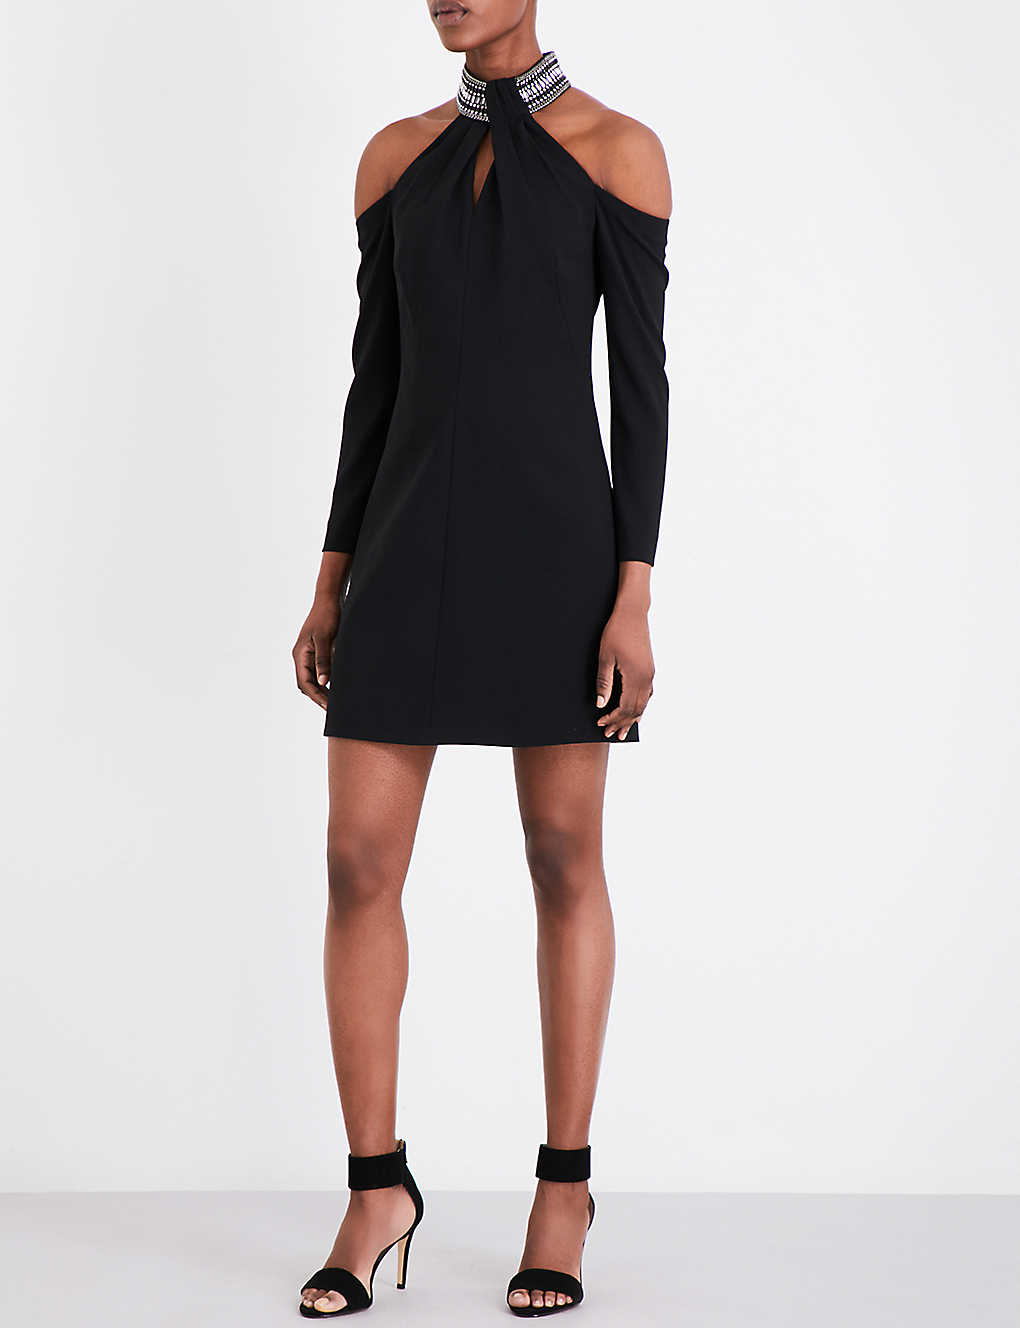 124dff3851f KAREN MILLEN - Jewelled neckline crepe dress | Selfridges.com